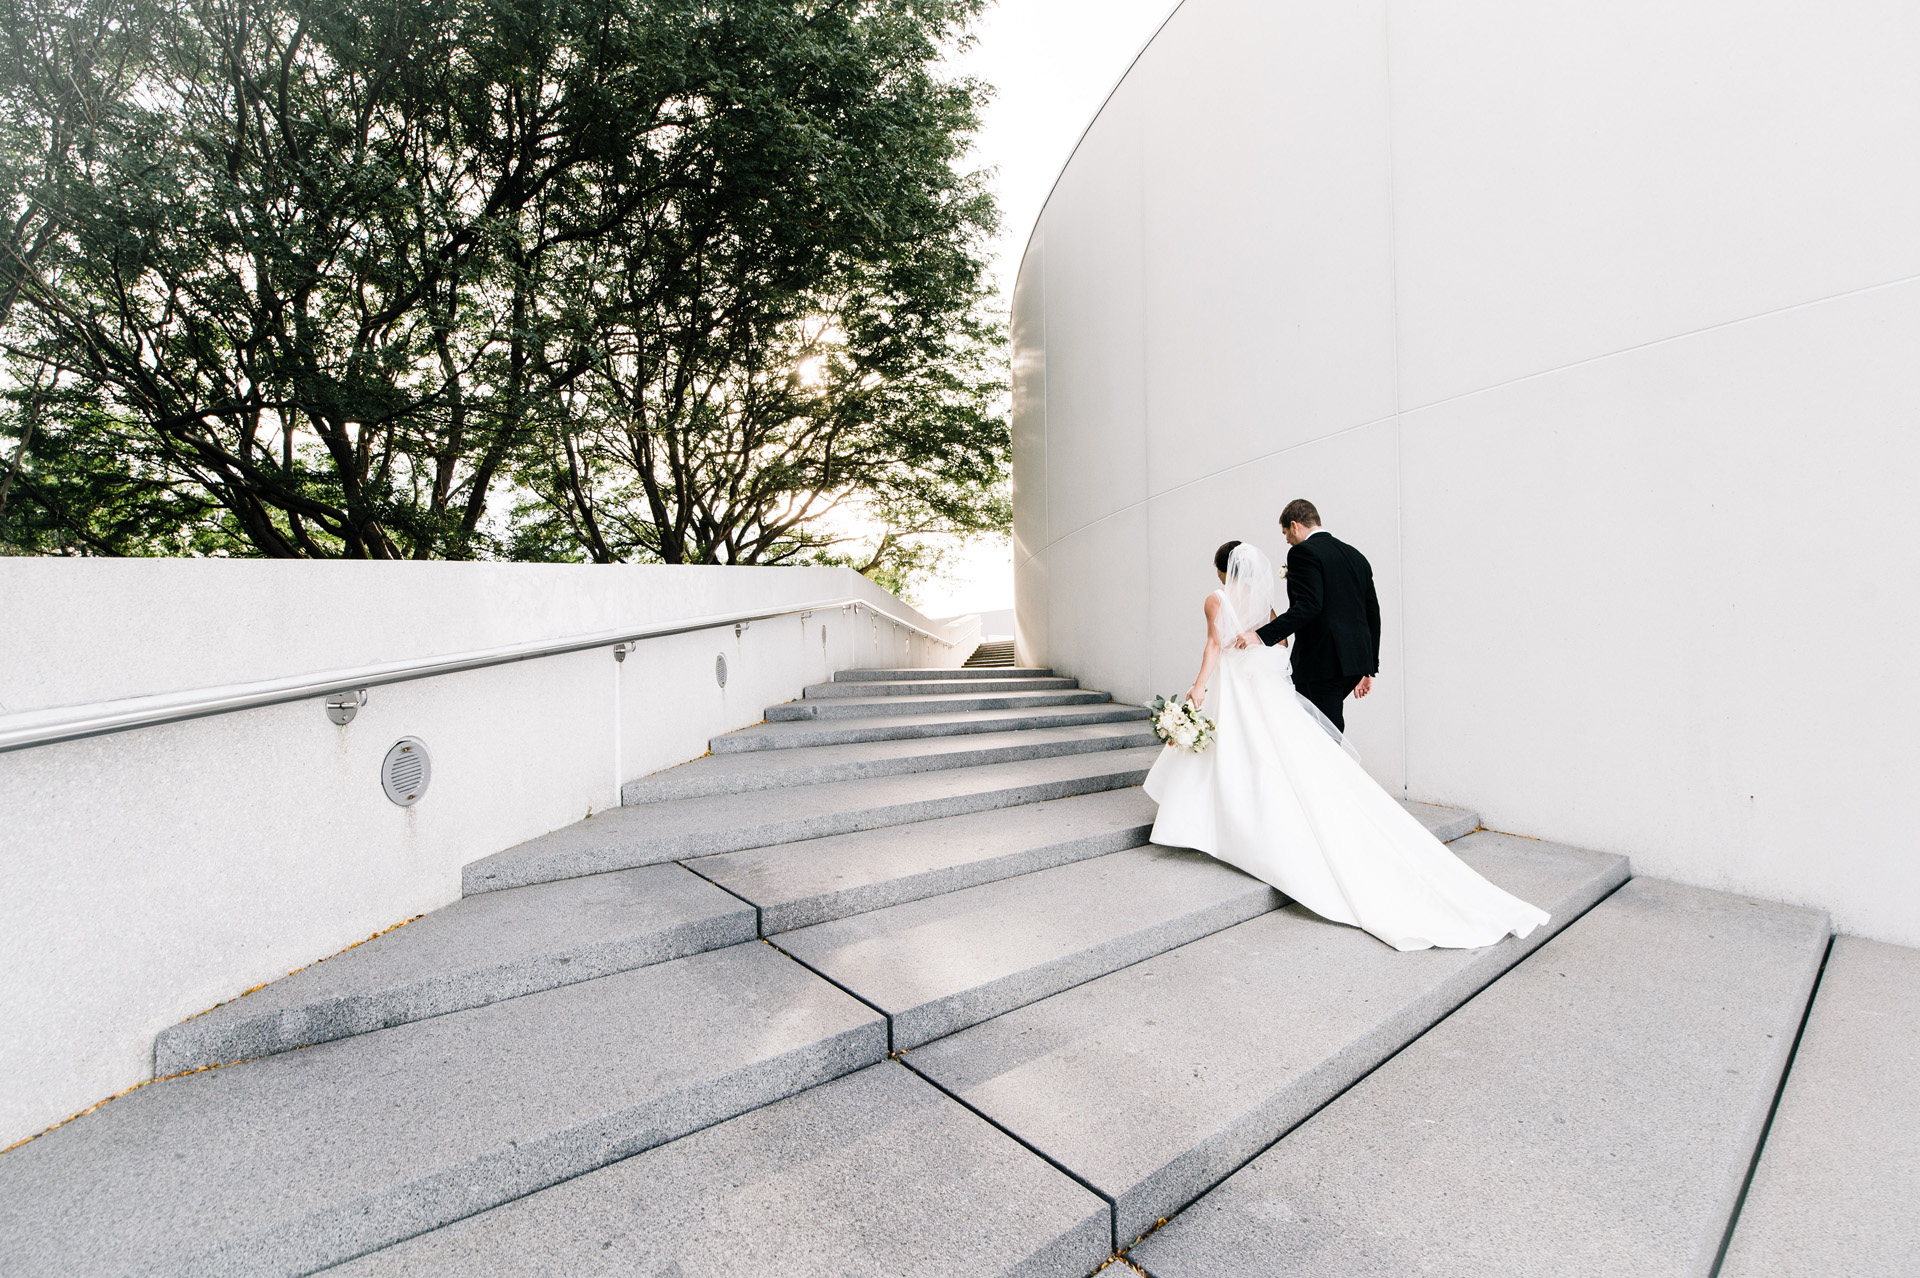 jfk-museum-wedding-photographer-36